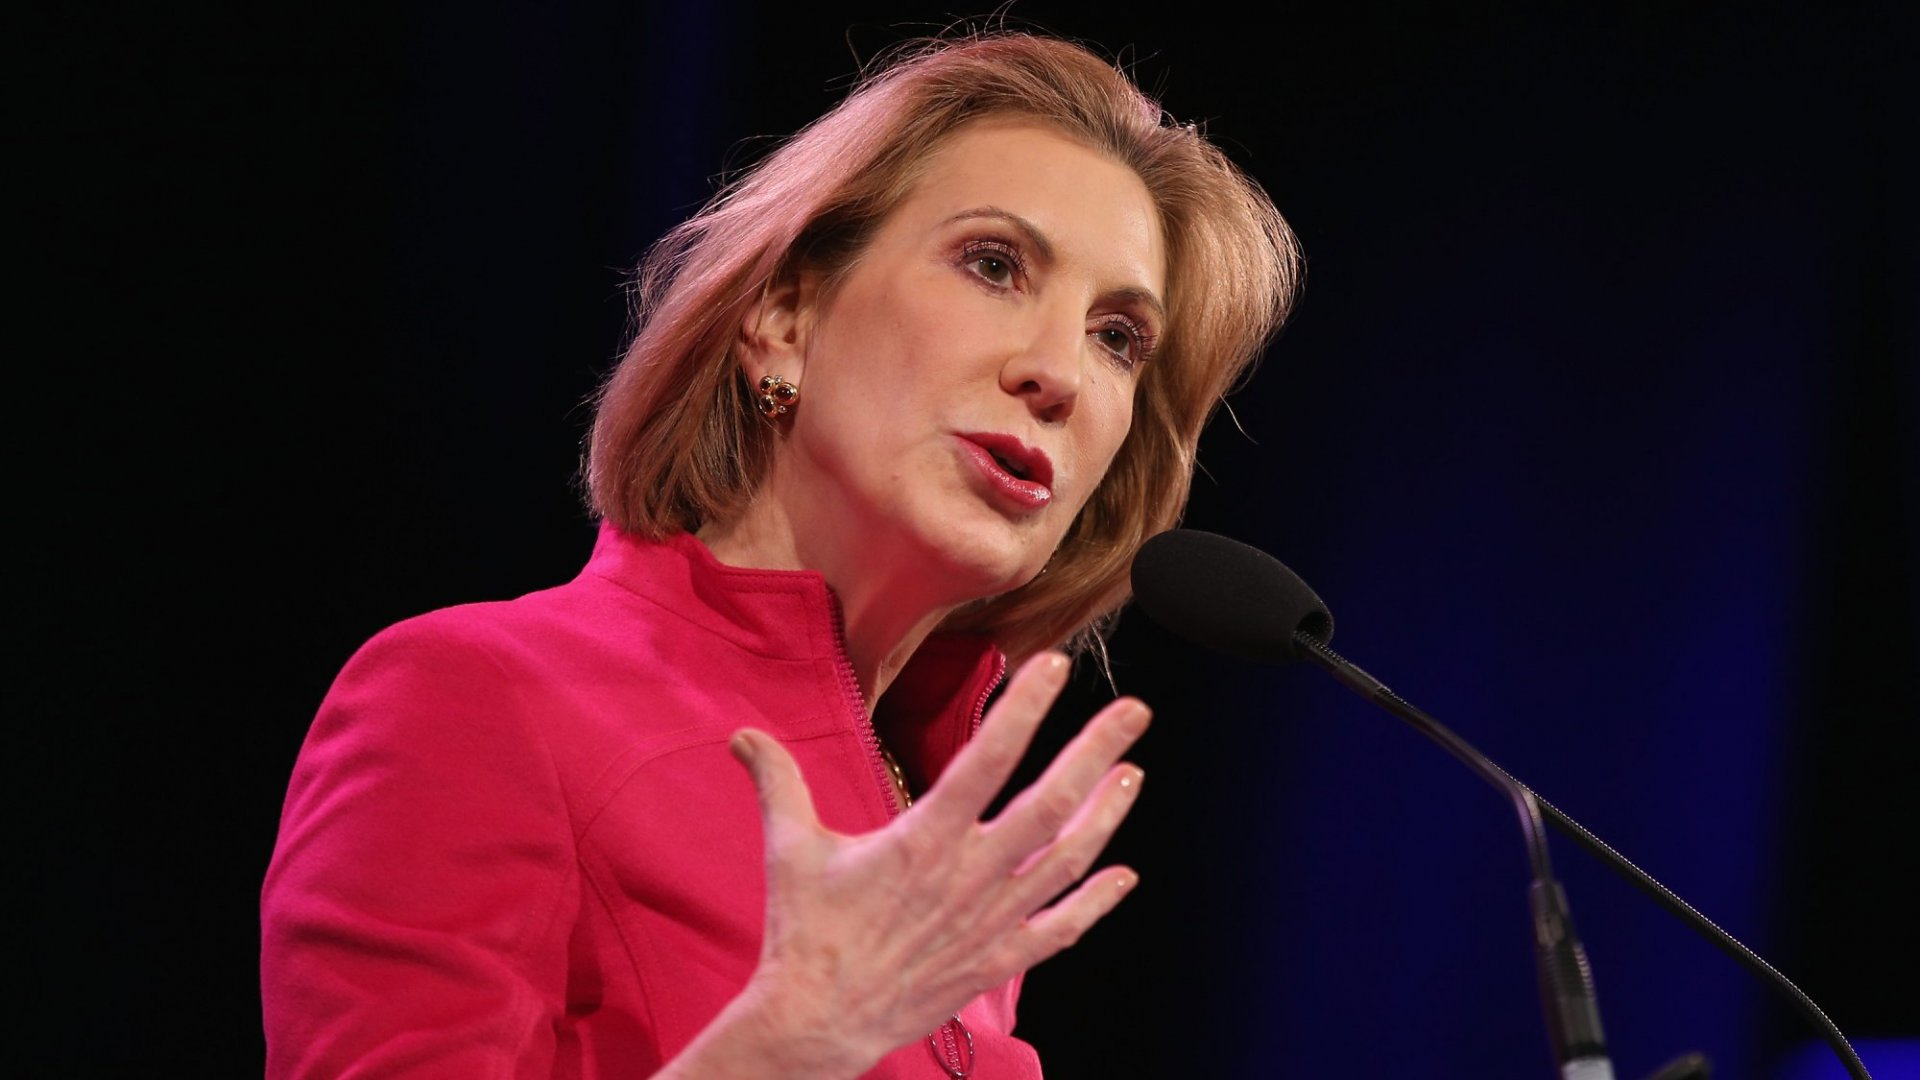 Carly Fiorina, Former CEO of Hewlett-Packard Company, will run for president.